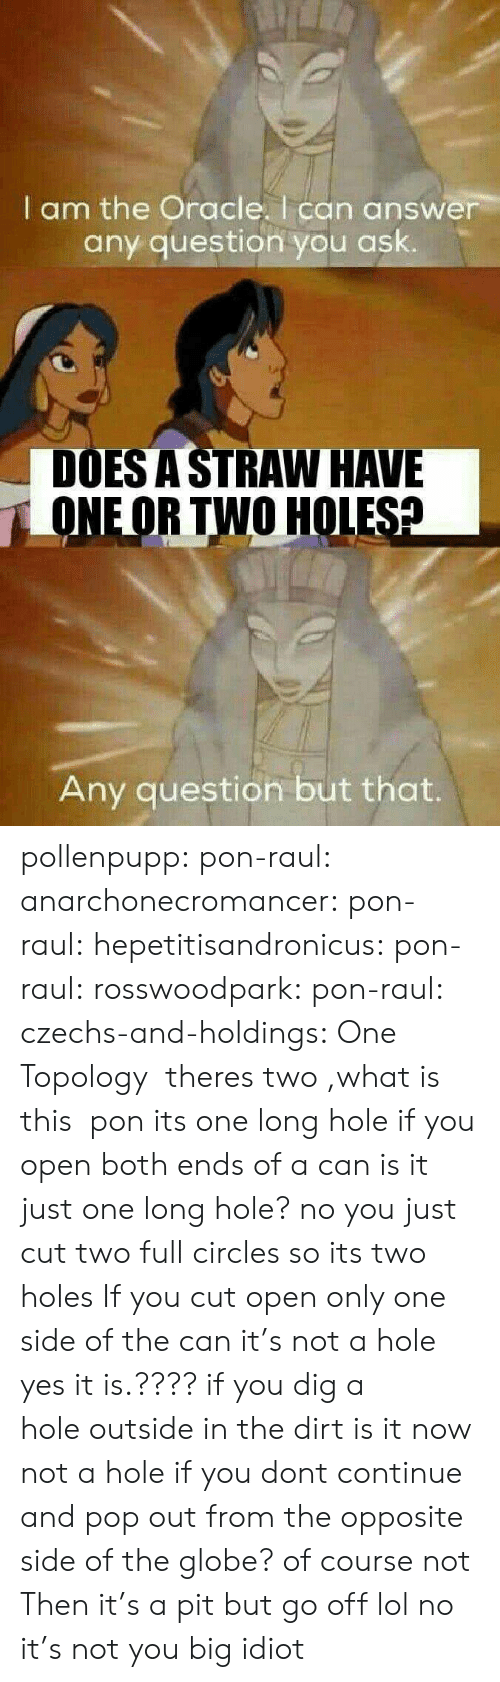 Any Question: I am the Oracle. I can answer  any question you ask.  DOES A STRAW HAVE  ONEOR TWO HOLESA  Any question but that. pollenpupp:  pon-raul:   anarchonecromancer:   pon-raul:   hepetitisandronicus:  pon-raul:   rosswoodpark:  pon-raul:  czechs-and-holdings:  One Topology   theres two ,what is this   pon its one long hole   if you open both ends of a can is it just one long hole? no you just cut two full circles so its two holes   If you cut open only one side of the can it's not a hole   yes it is.???? if you dig a hole outside in the dirt is it now not a hole if you dont continue and pop out from the opposite side of the globe? of course not   Then it's a pit but go off lol   no it's not you big idiot